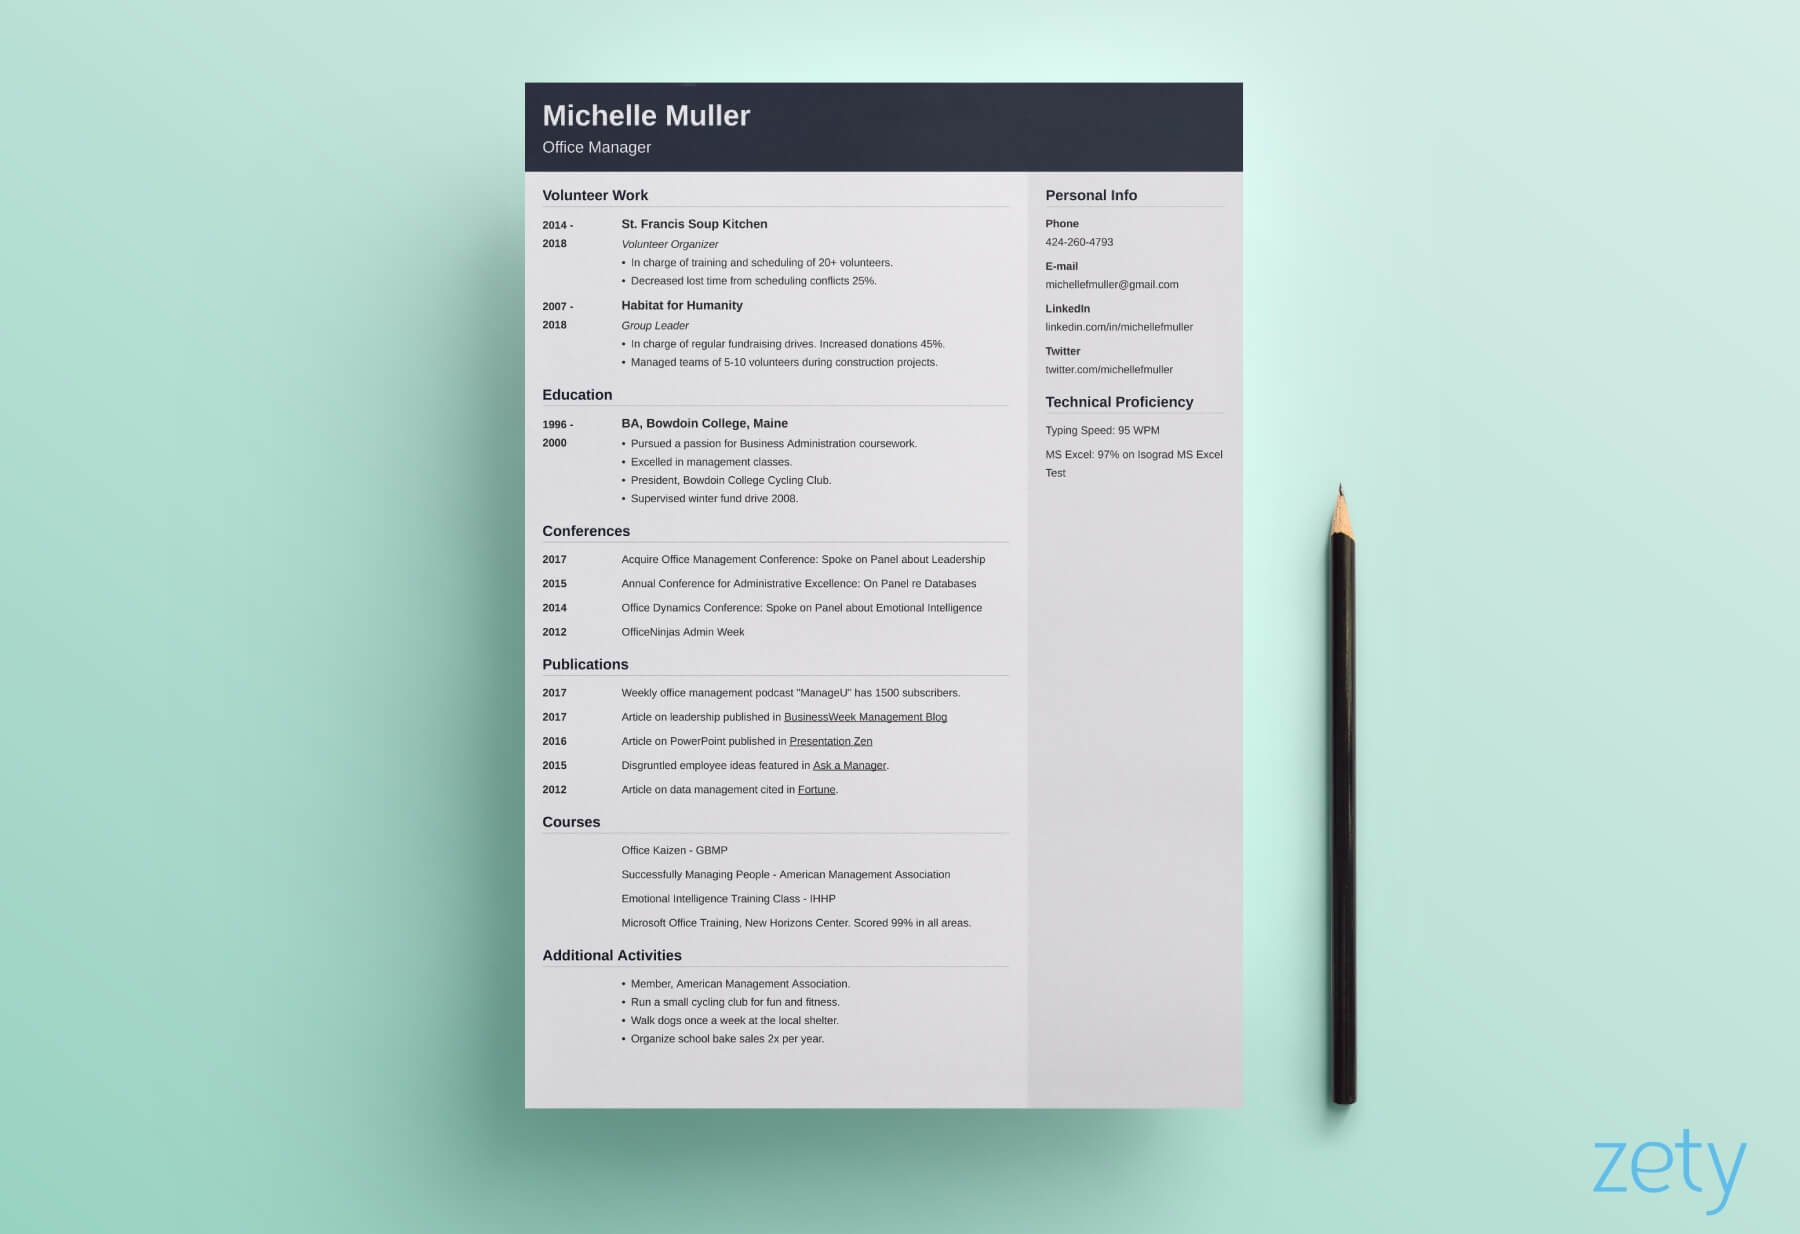 resume it crush your chances format tips one or two cubic action oriented logistics Resume One Page Or Two Page Resume